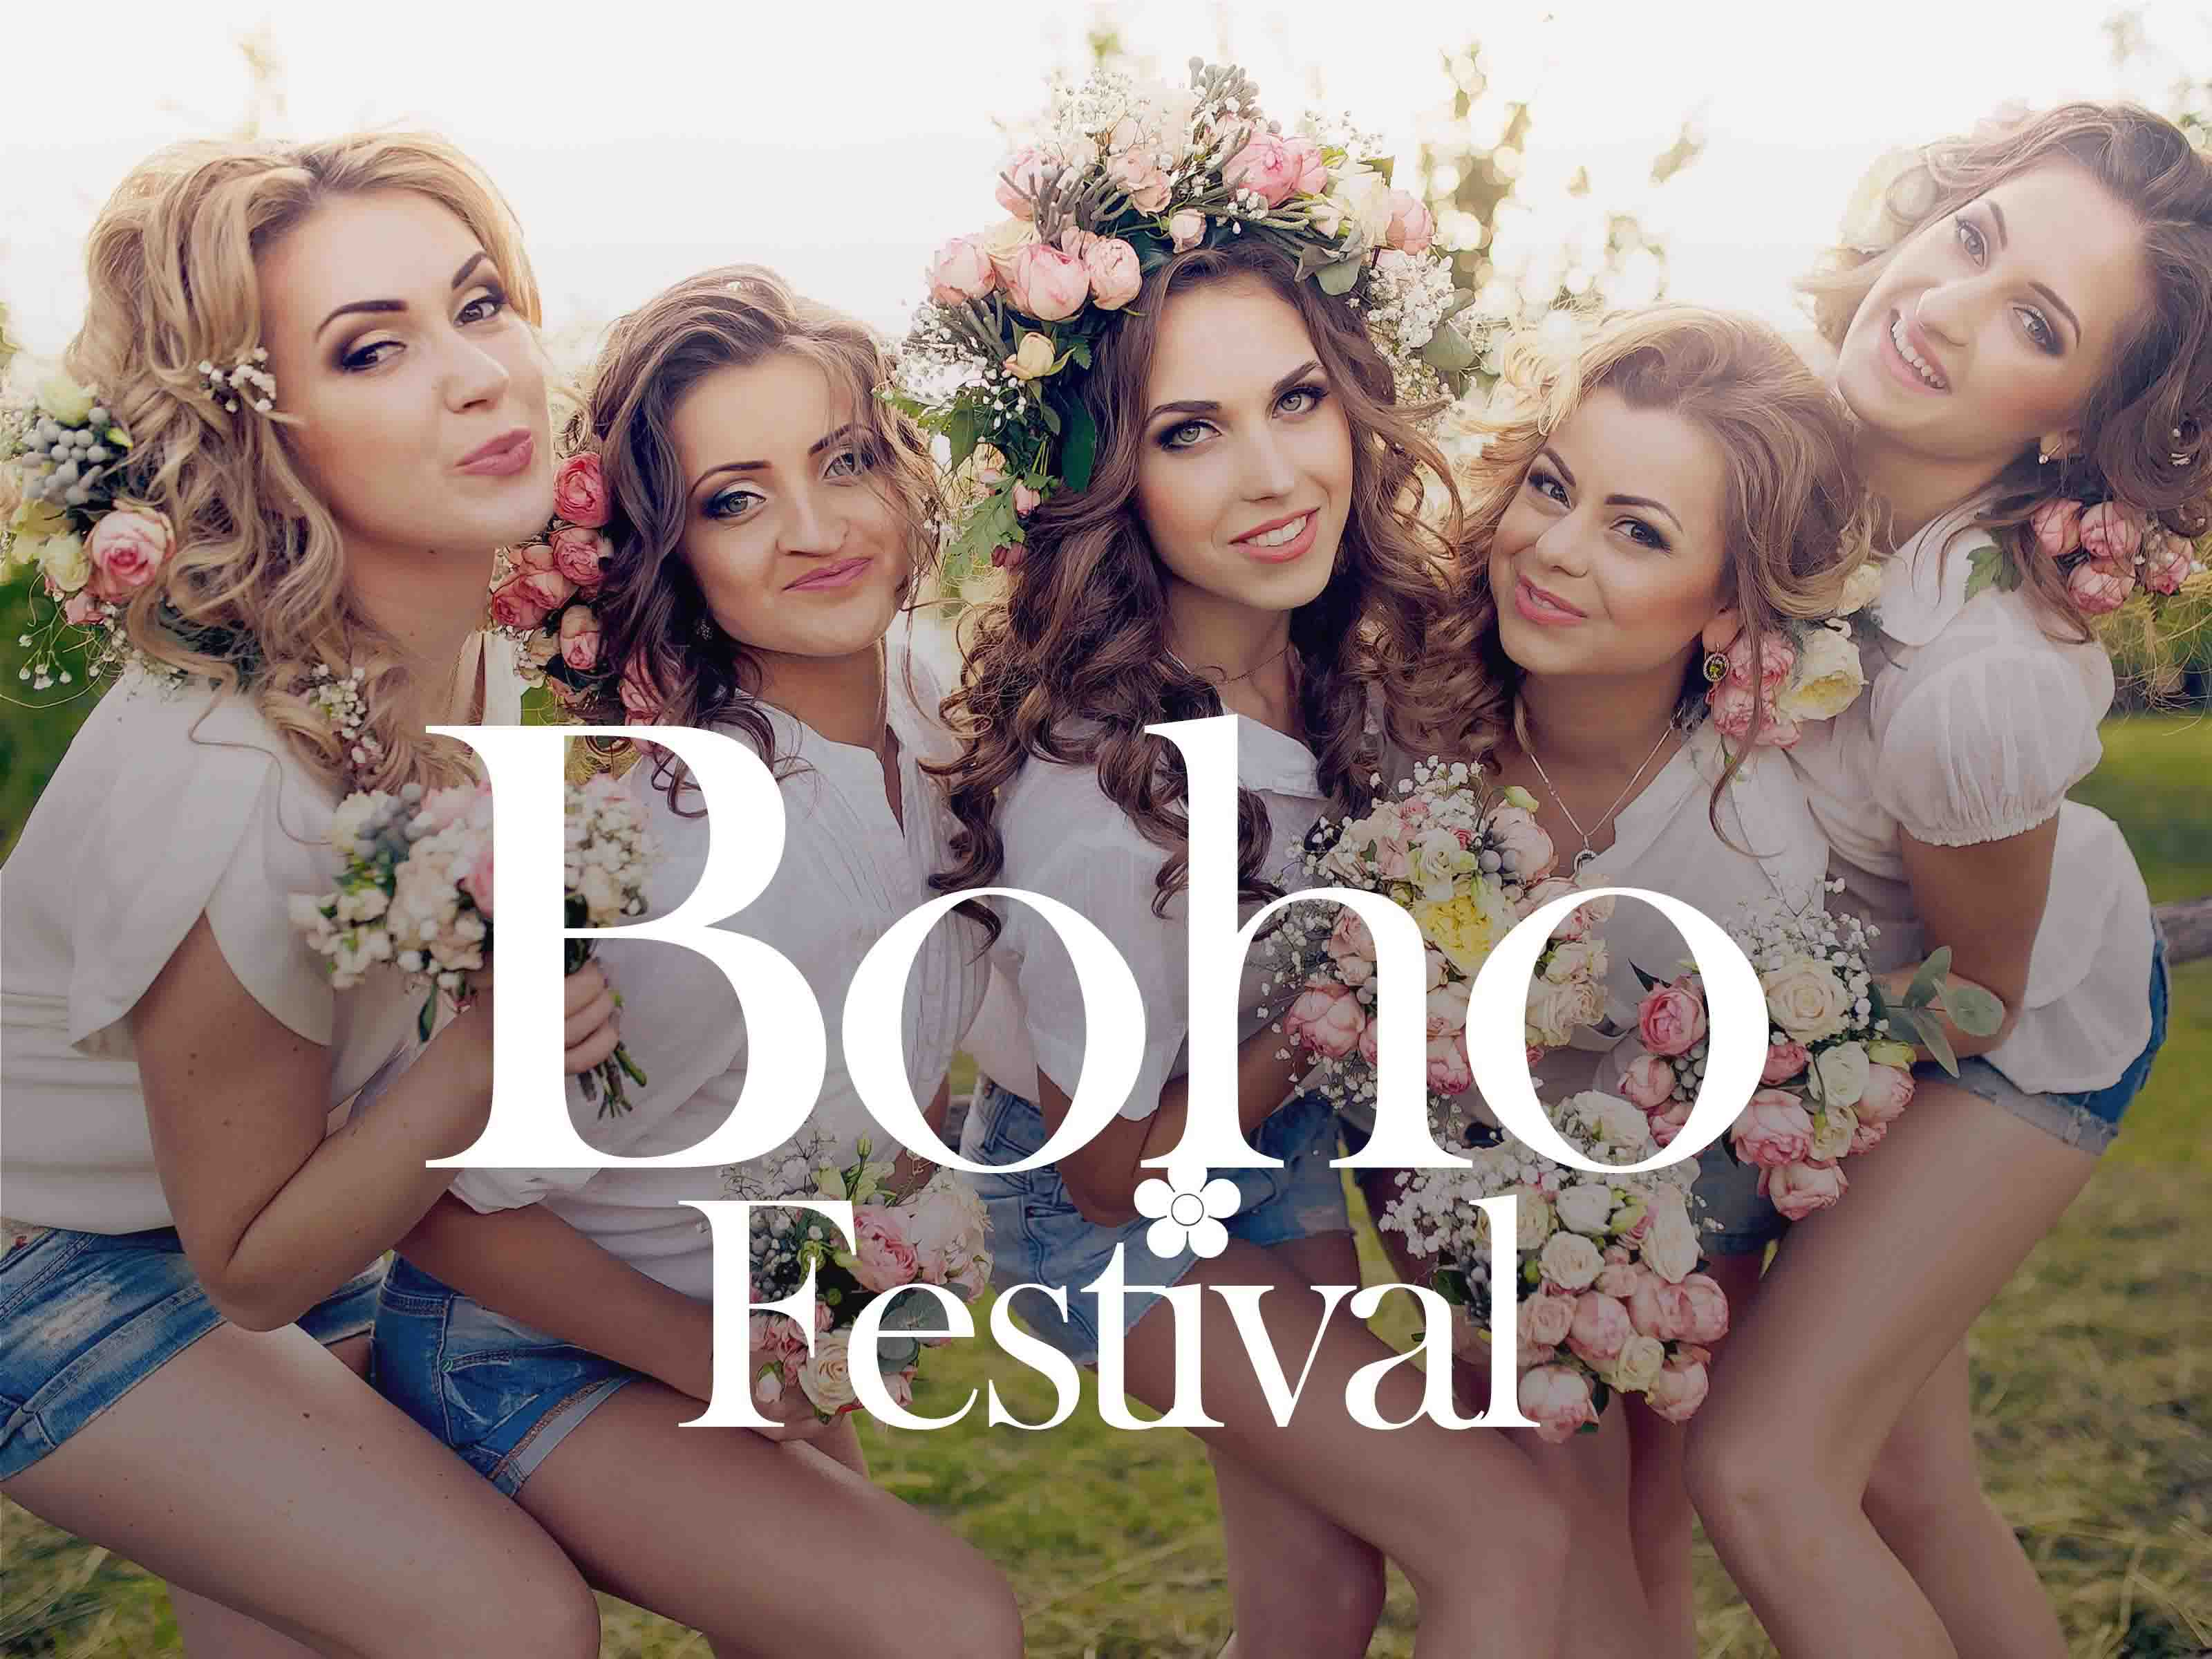 Hen Party Themes - Boho Festival